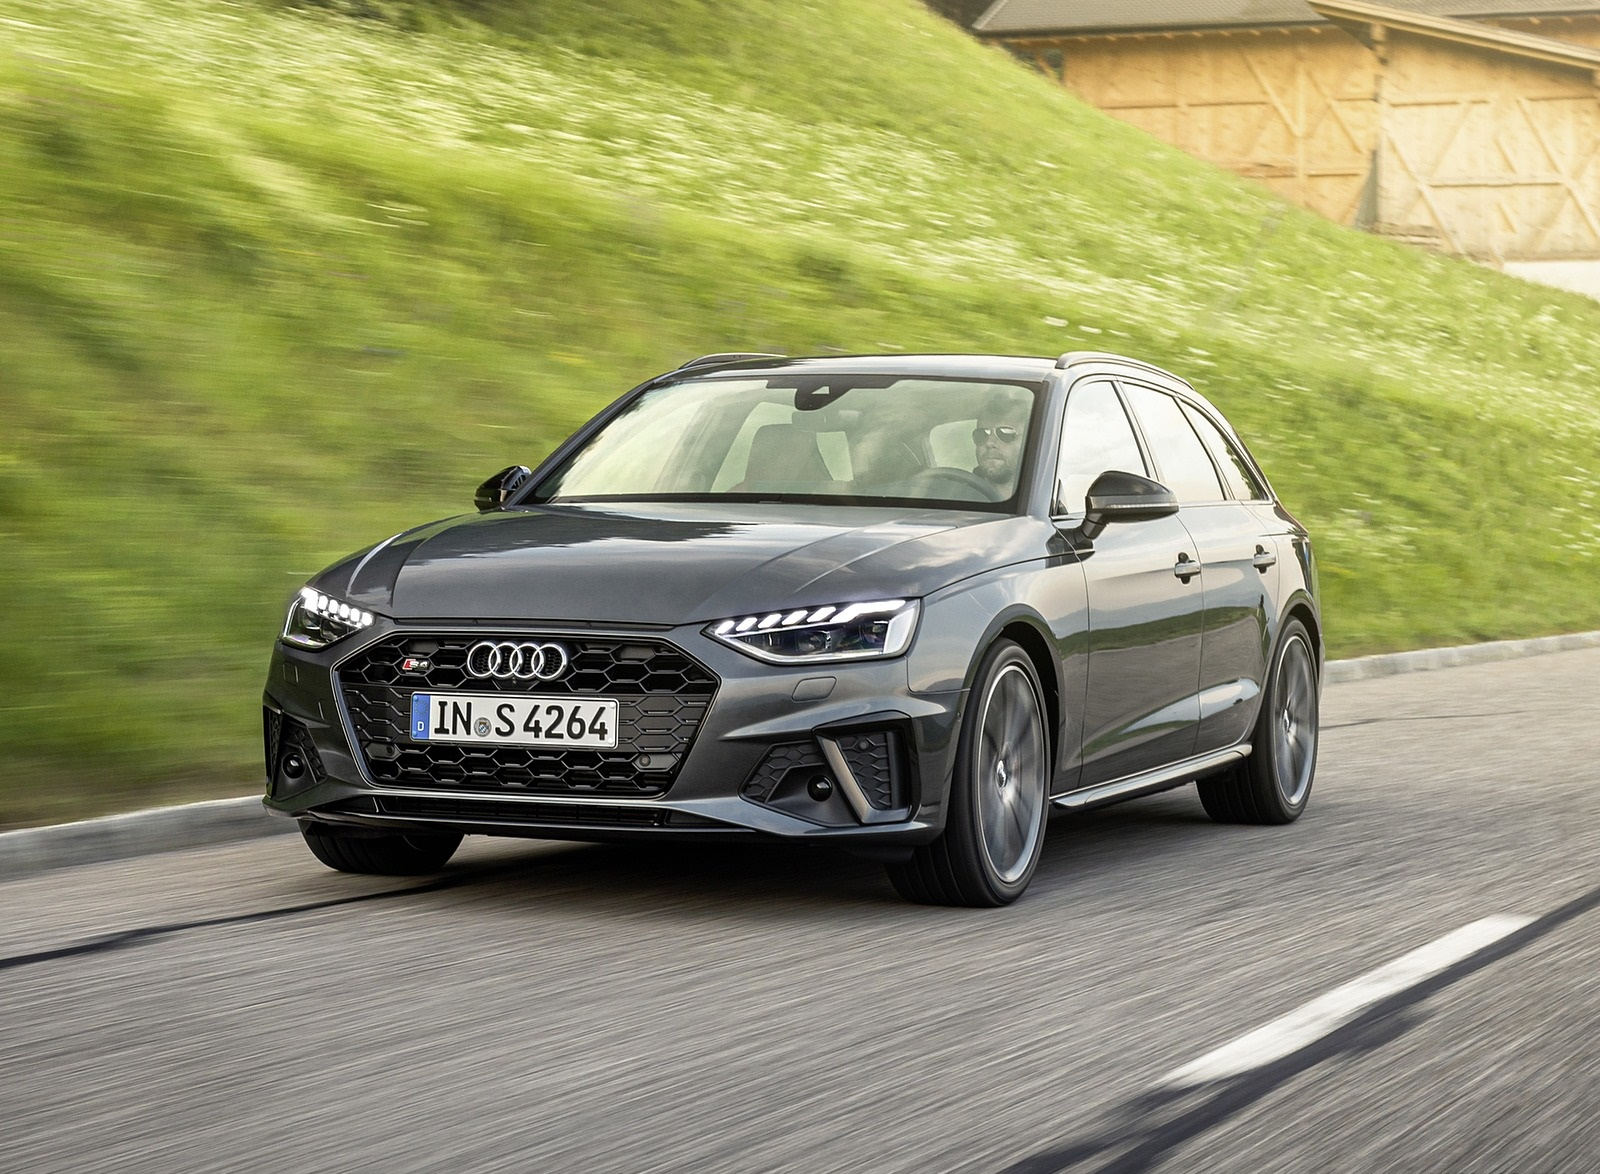 2019 Audi S4 Avant TDI (Color: Daytona Gray) Front Three-Quarter Wallpapers (2)